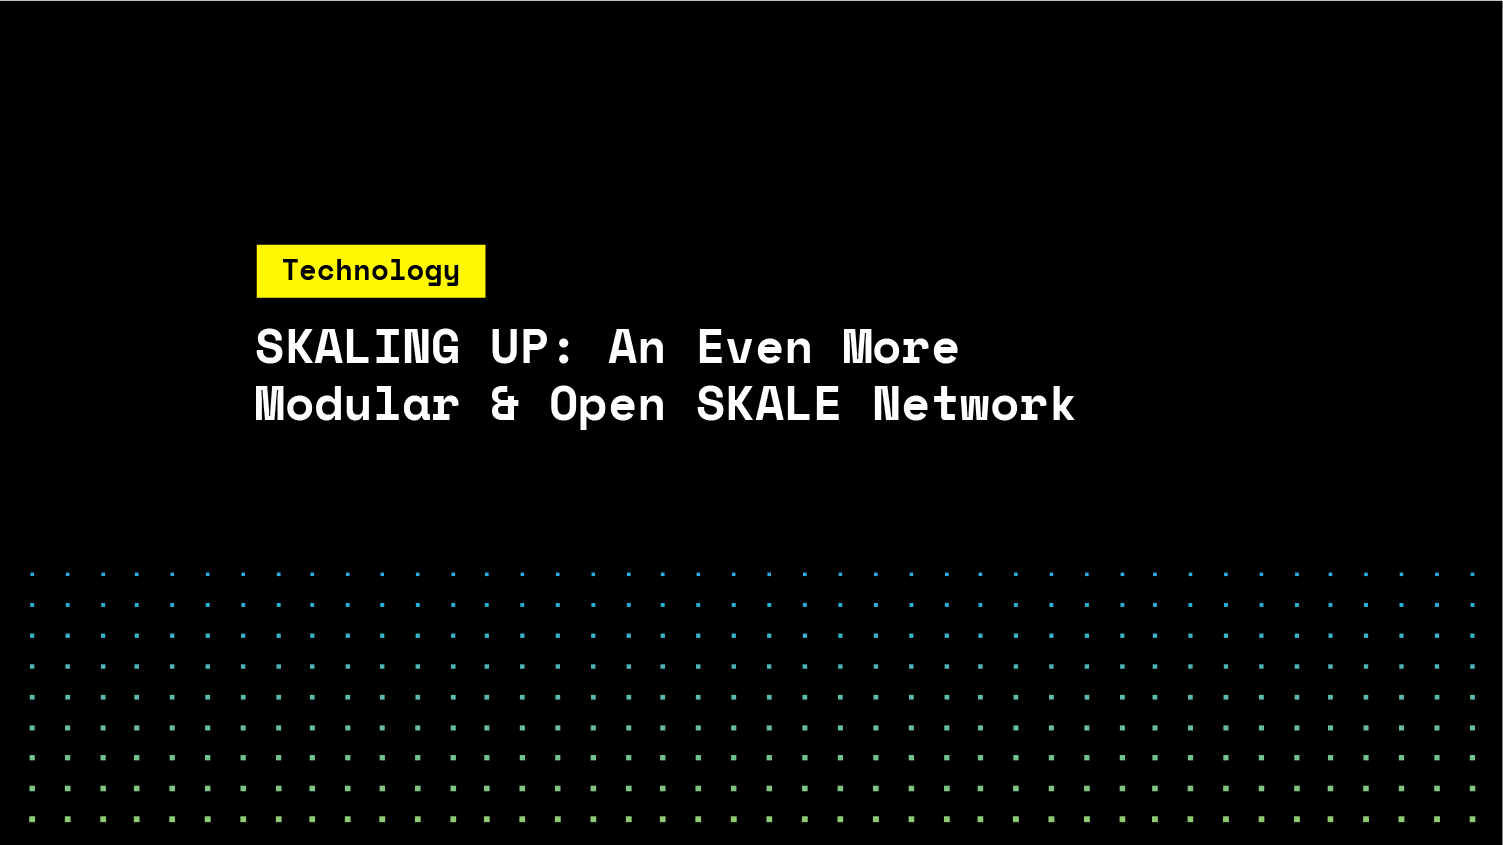 SKALING UP: An Even More Modular and Open SKALE Network